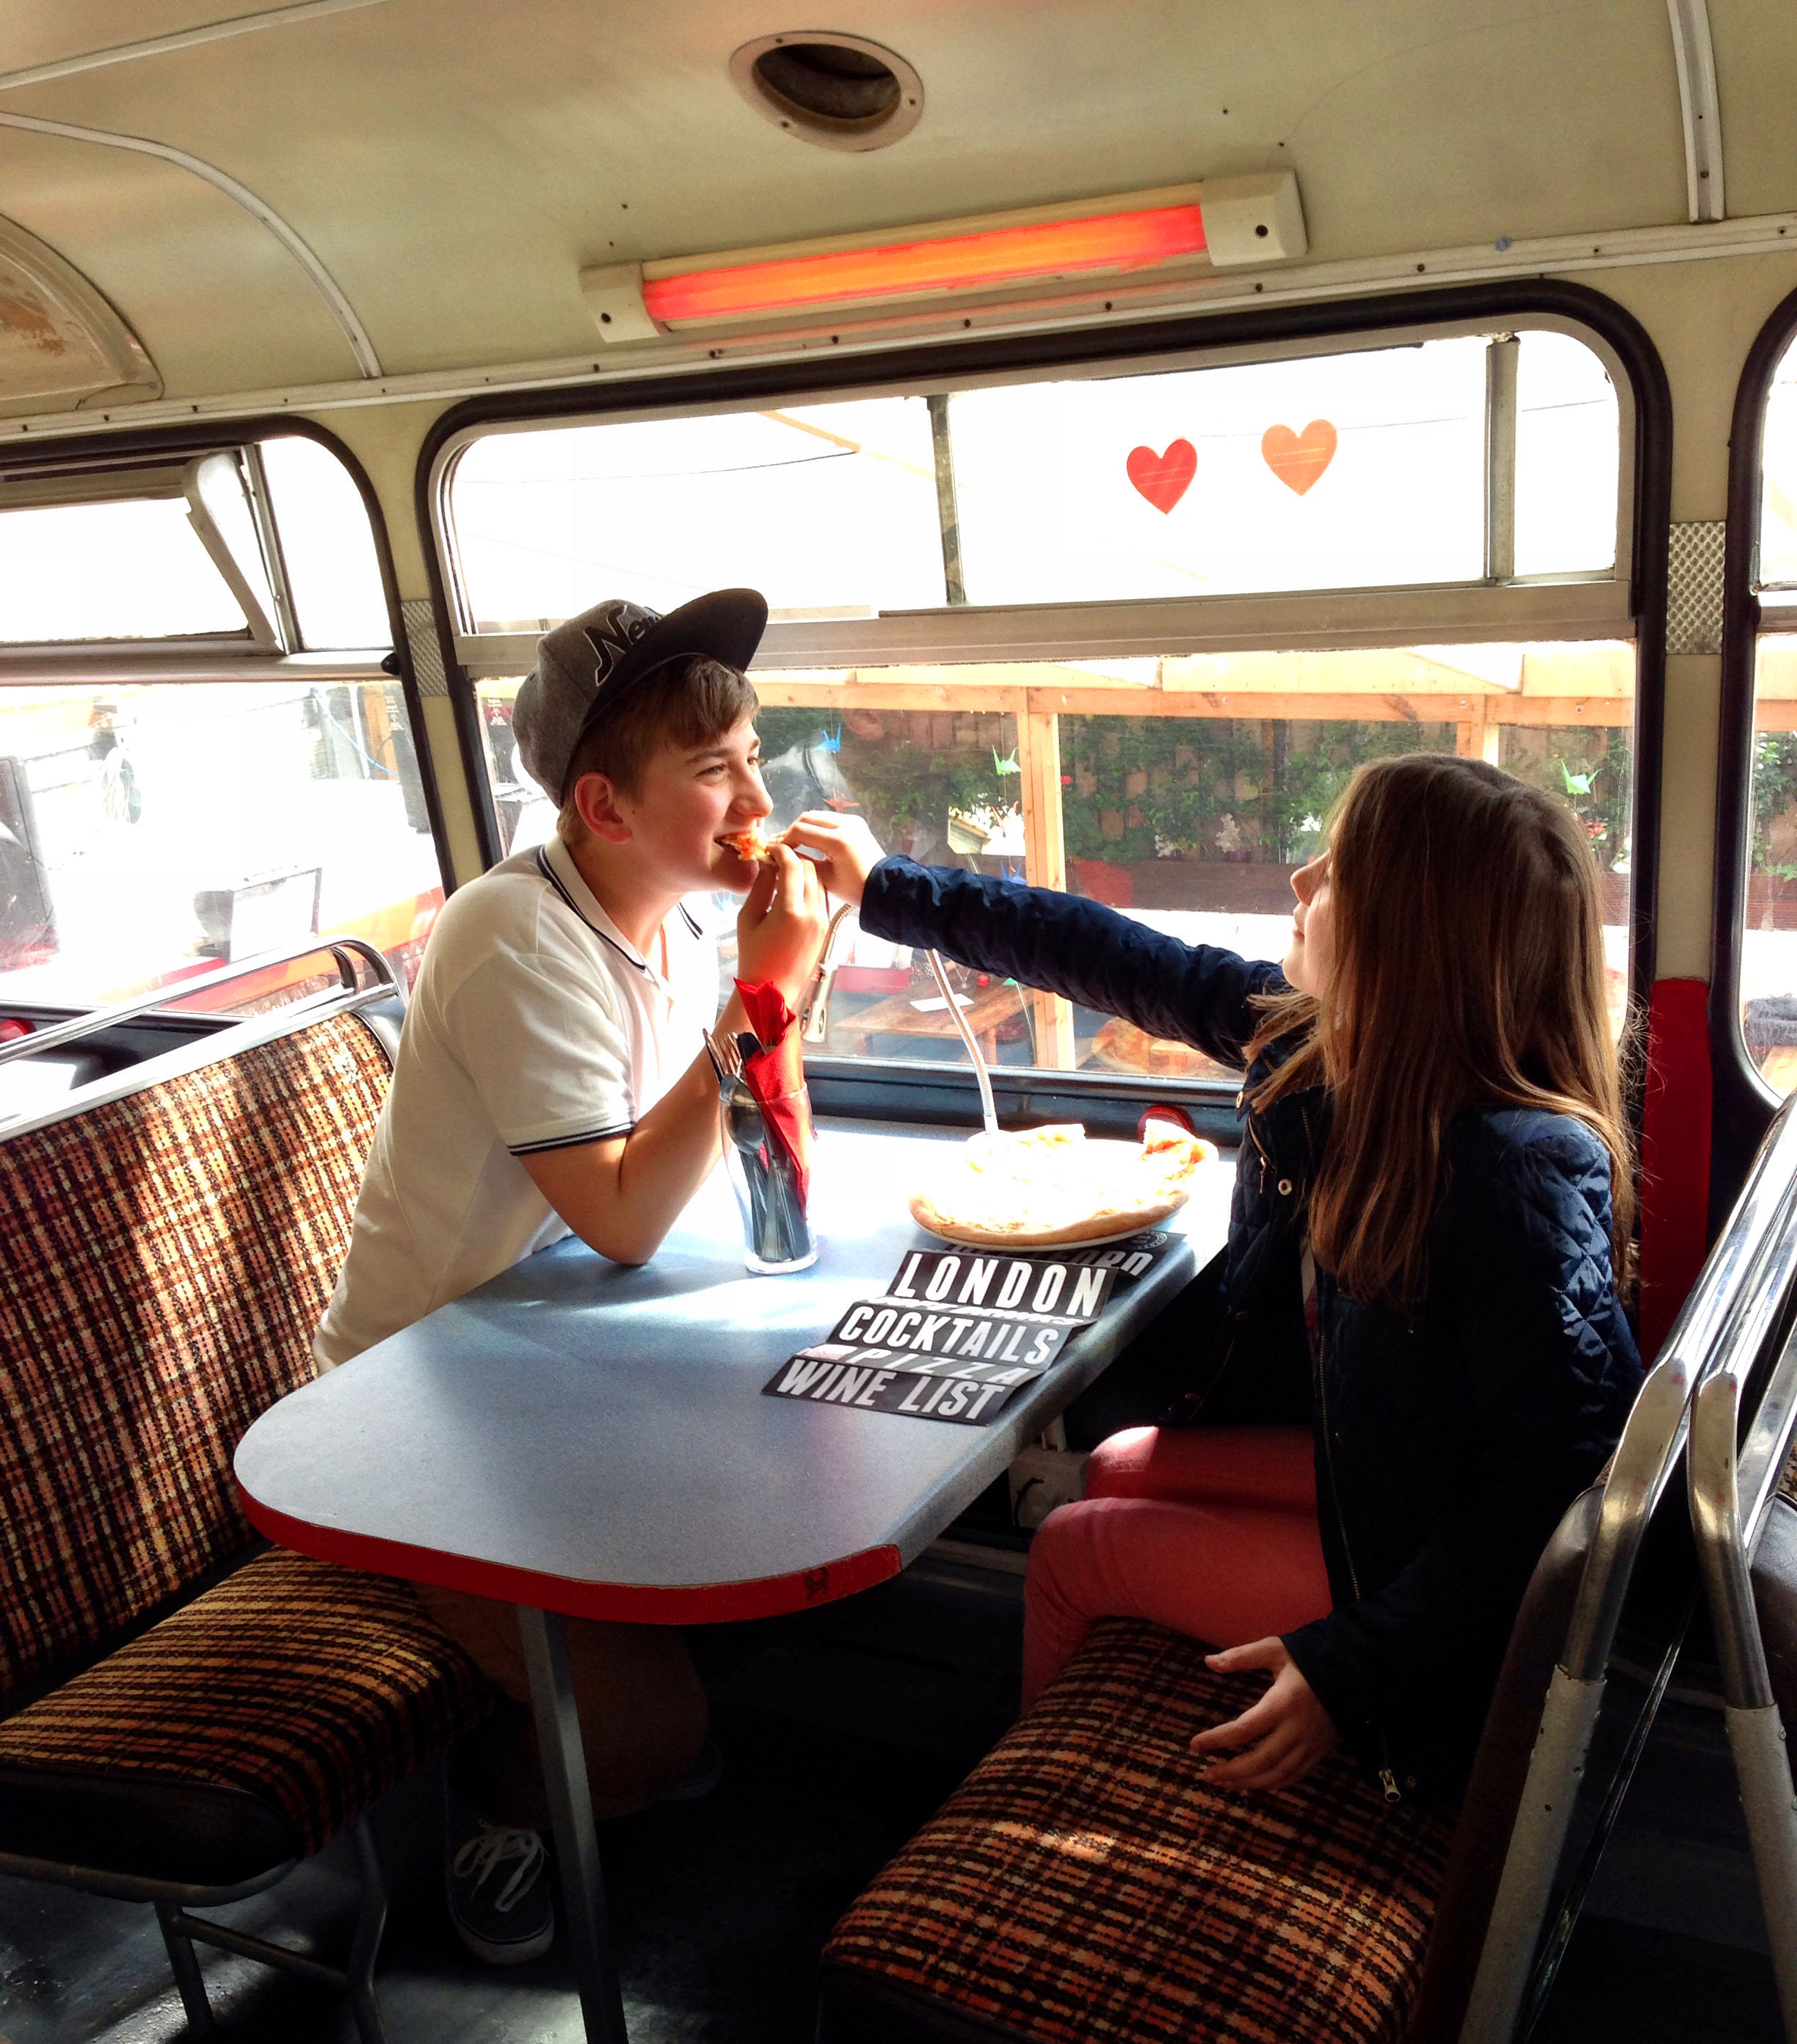 The Big Red Pizza Bus | Deptford | London | Kids | We Love Food, It's All We Eat